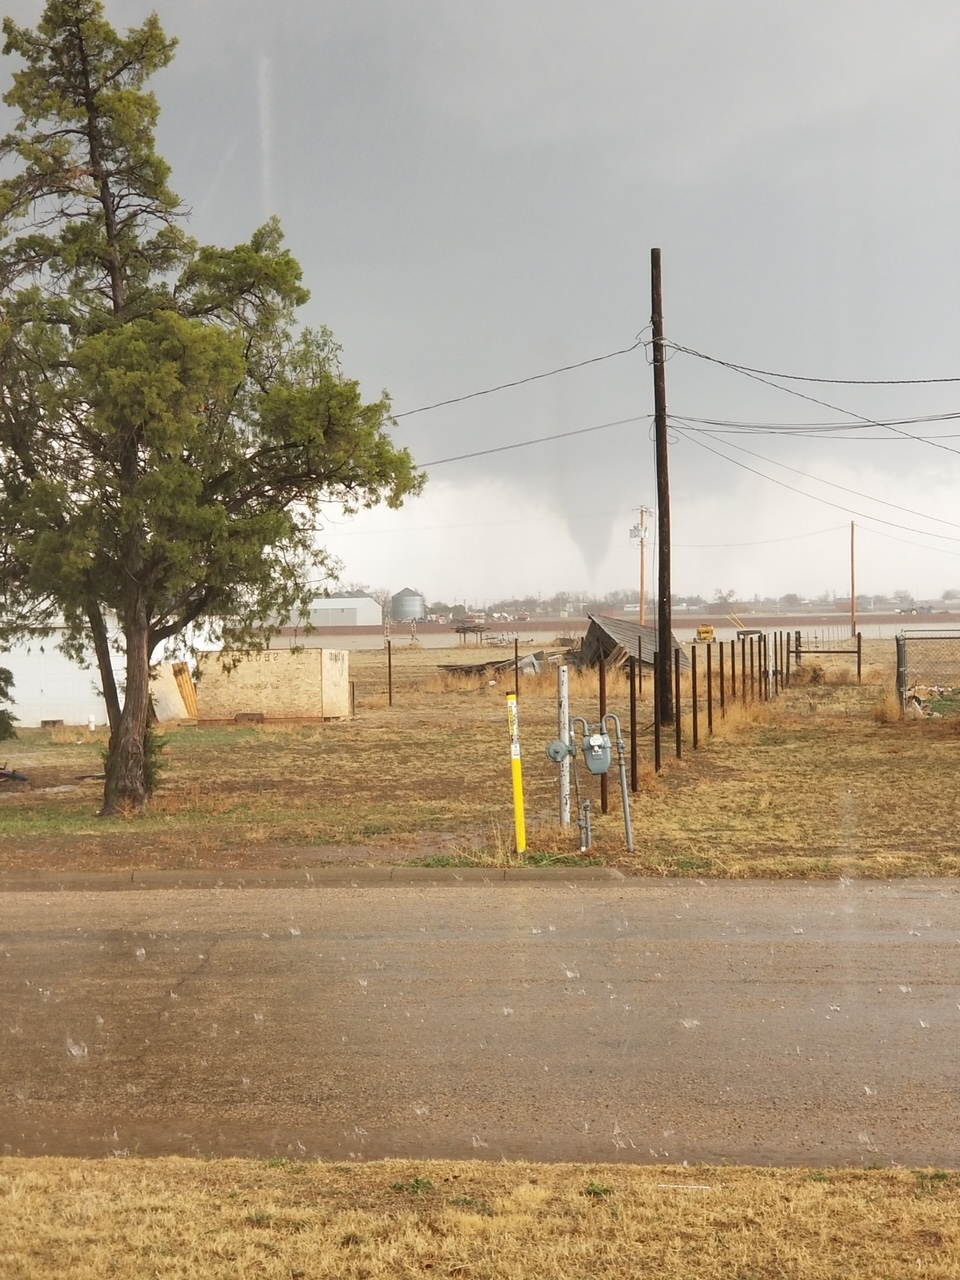 Tornado south of Plainview, Texas, Saturday afternoon (13 March). The picture is courtesy ofLeslie Daugherty and KAMC.